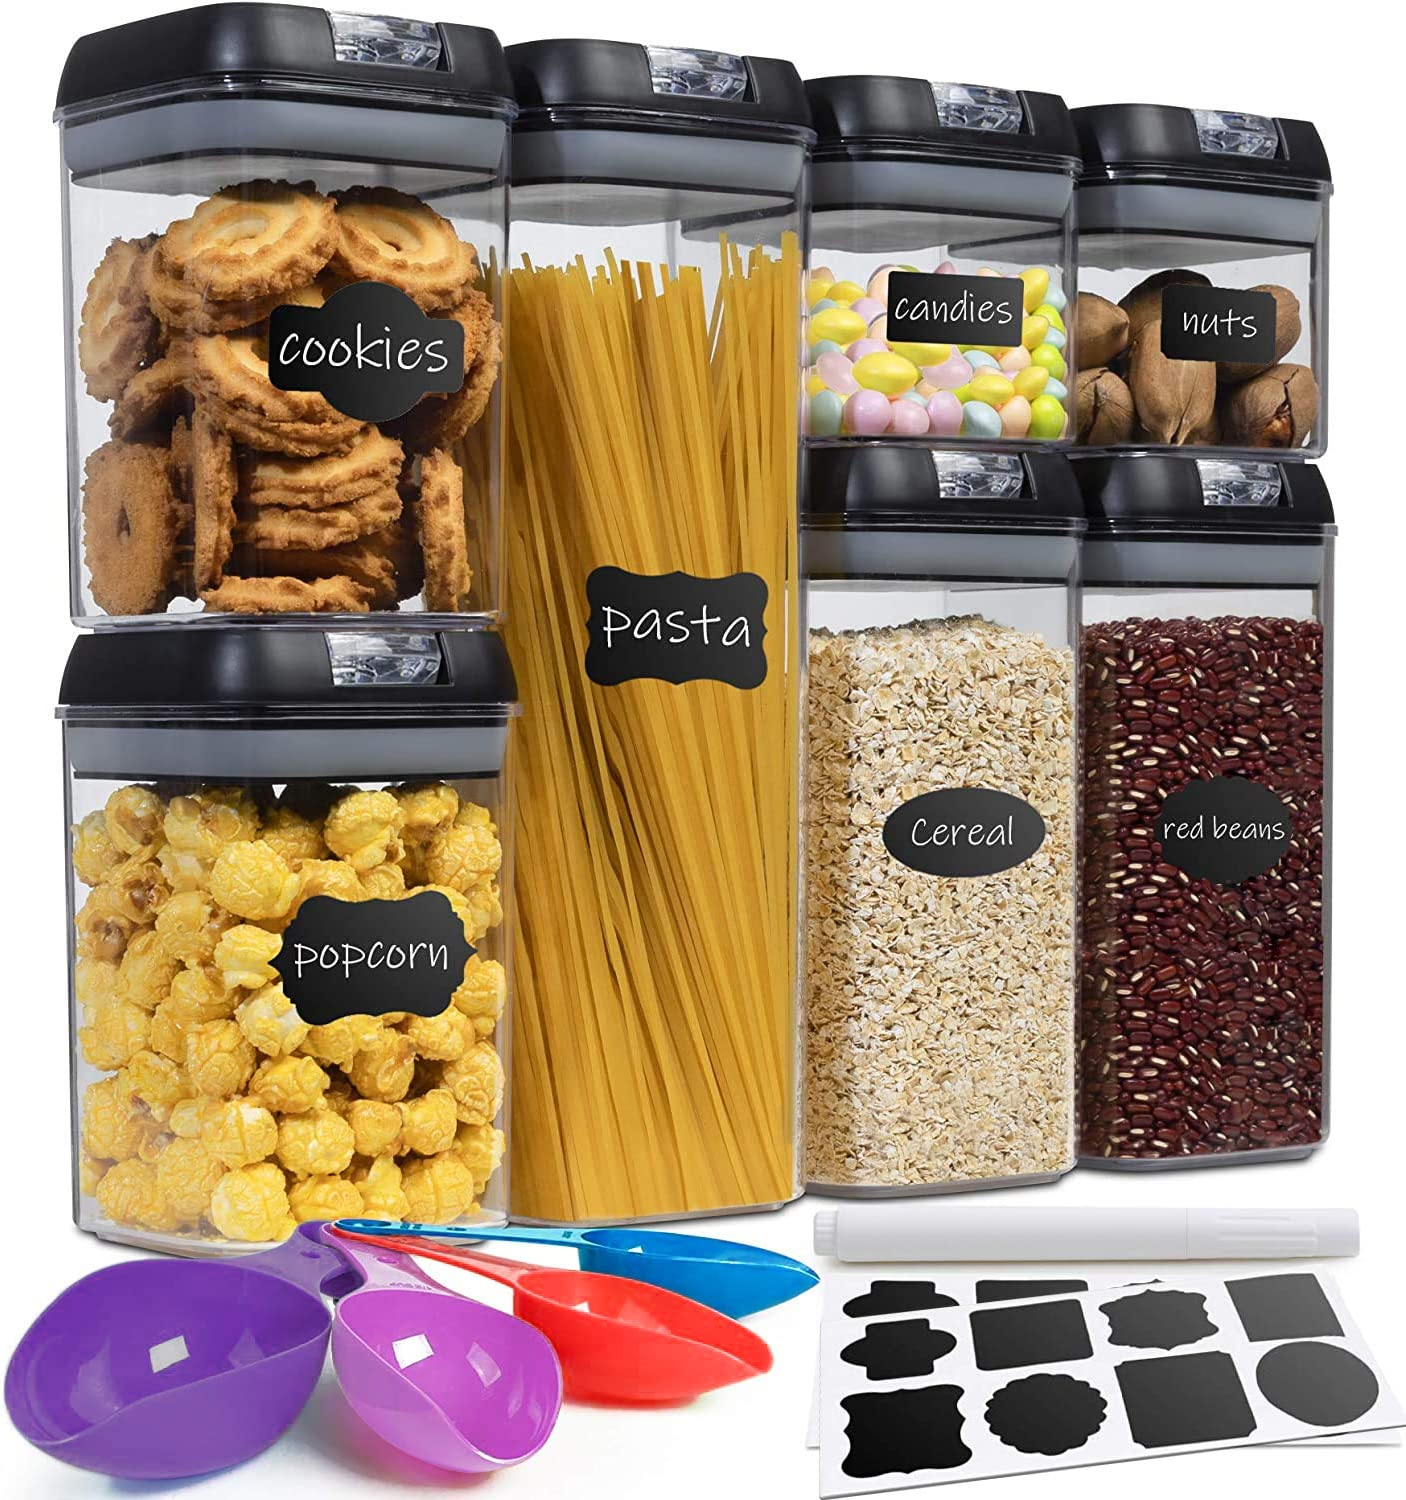 Fiyton Airtight Food Storage Container Sets-Kitchen Pantry & Counter-top Organizer -7 PC -20 Labels+Marker & Measuring Cups-BPA Free-Heavy Duty Clr Plastic CNTR. for Flour-Cereal-Rice-w/Improved Lids